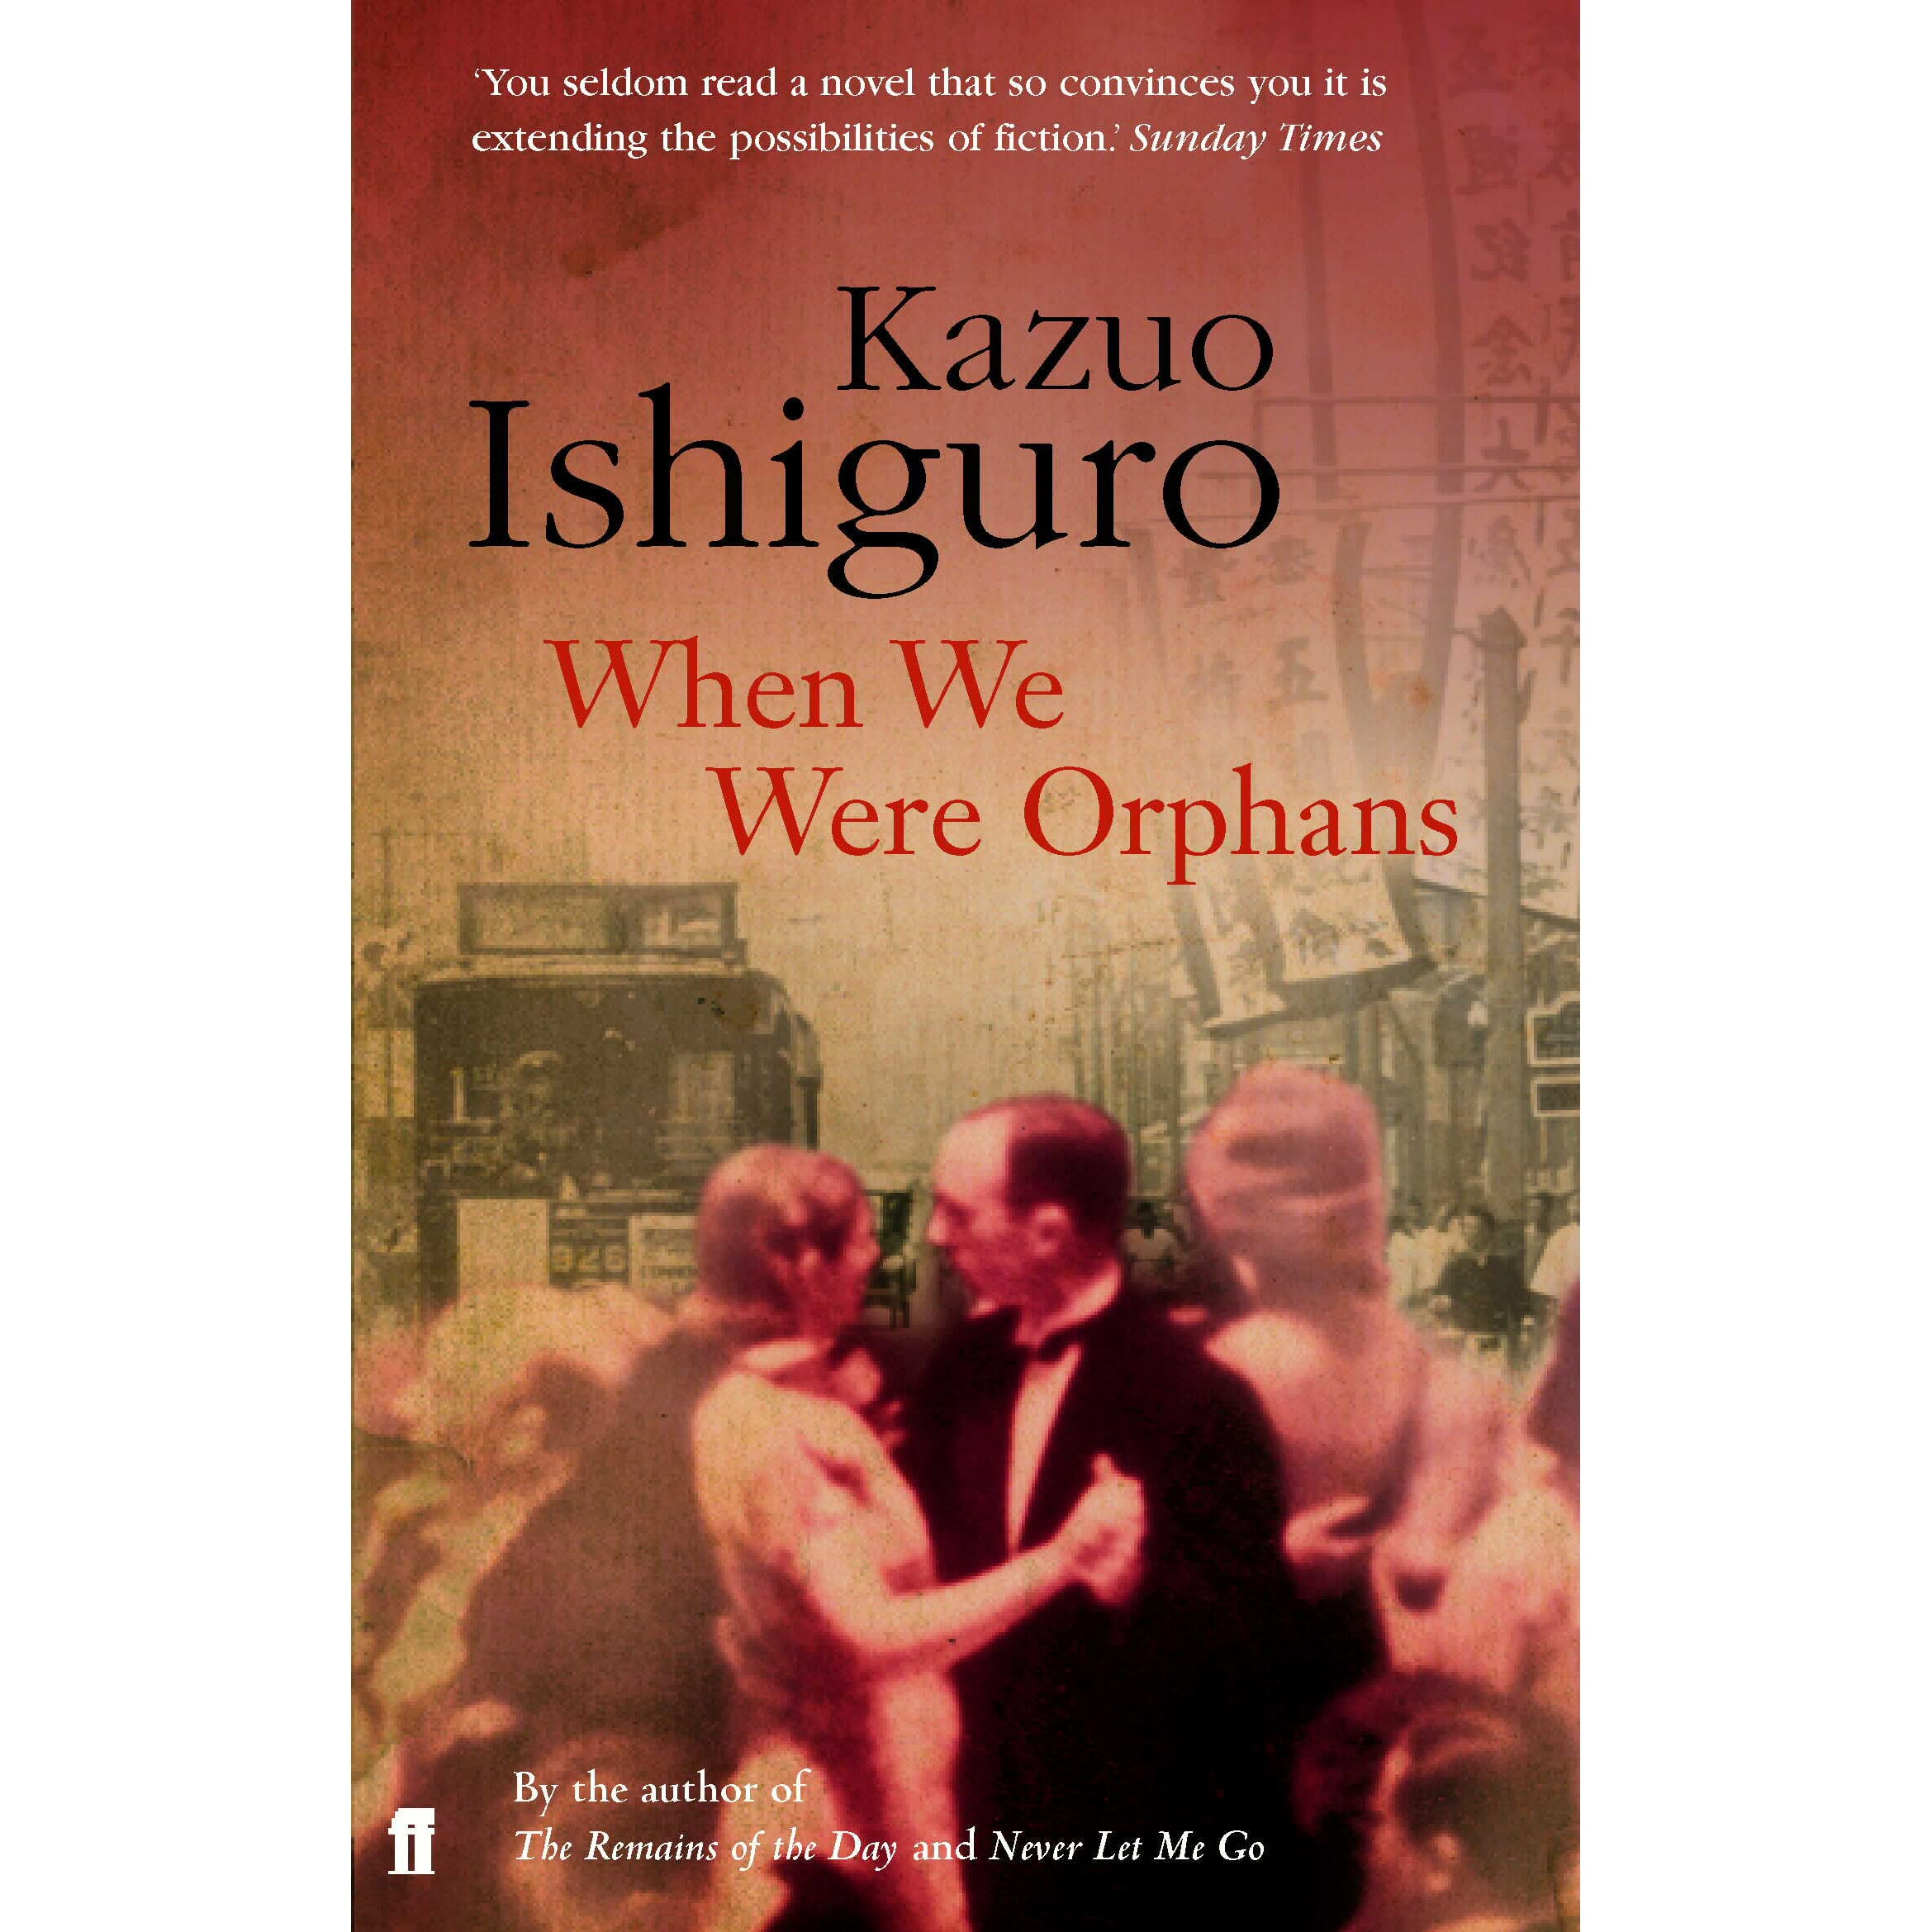 7 Ways Kazuo Ishiguro Can Help You Improve Your Writing